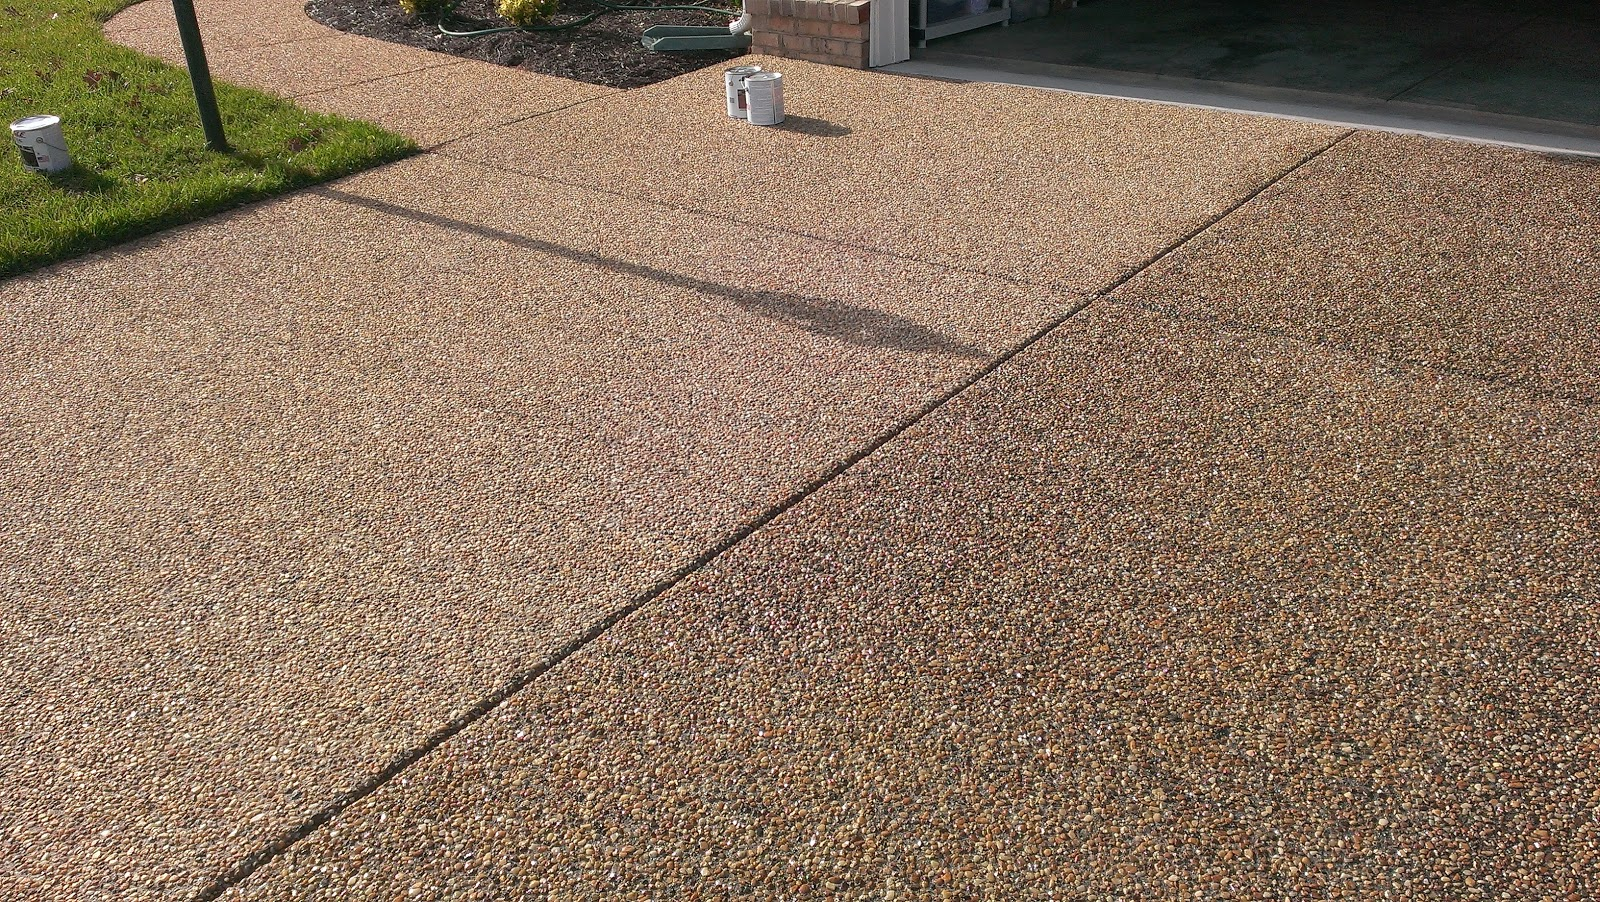 Southern home wood deck cleaning driveway cleaning and for Best way to clean cement driveway